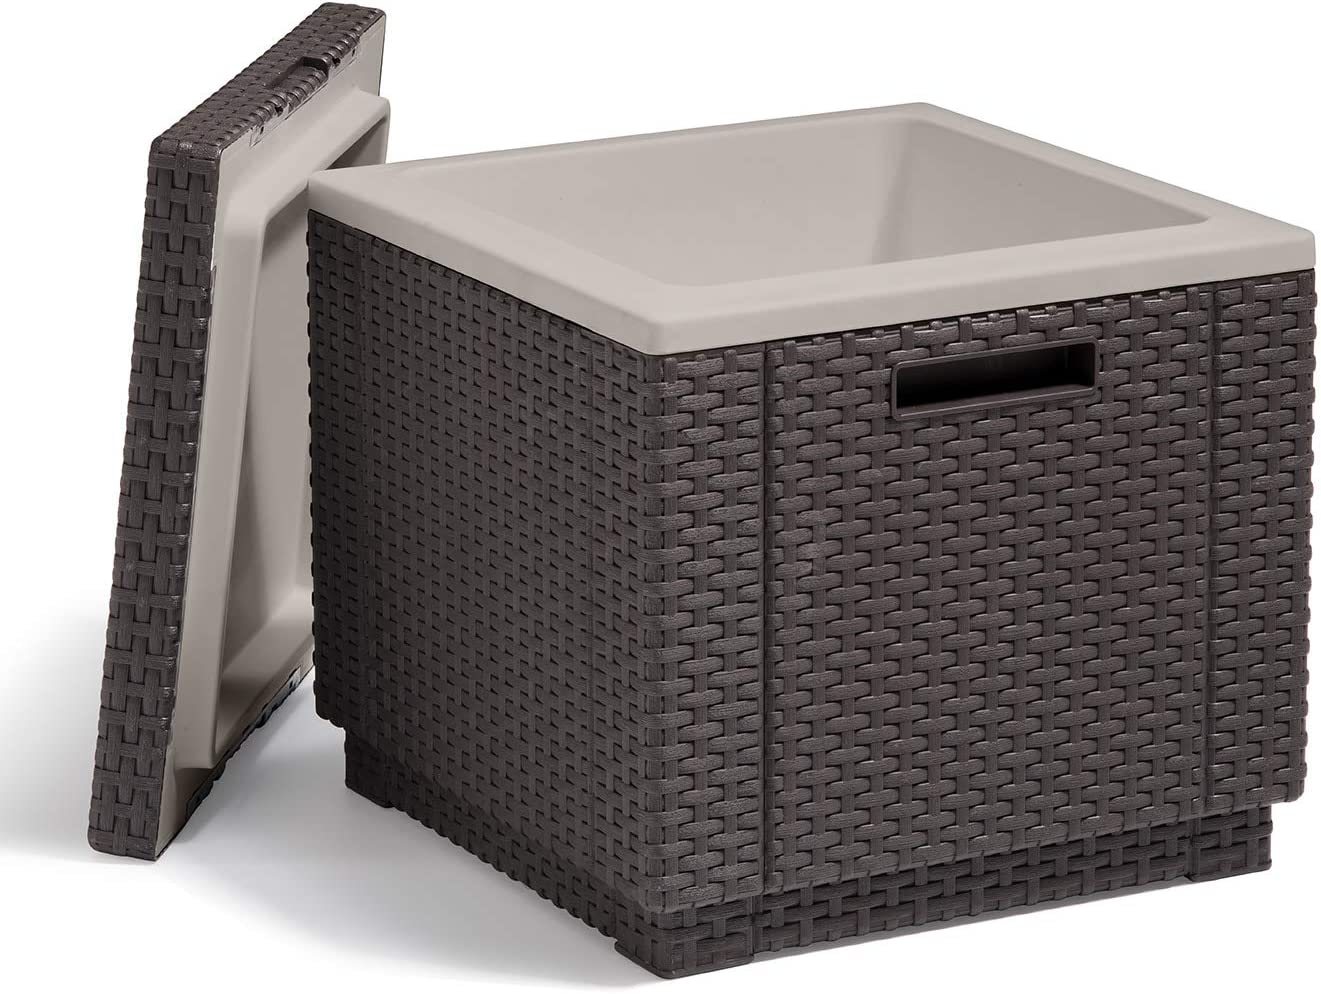 KETER Ice Cube Beer and Wine Cooler Table Perfect for Your Patio, Picnic, and Beach Accessories, Brown : Garden & Outdoor